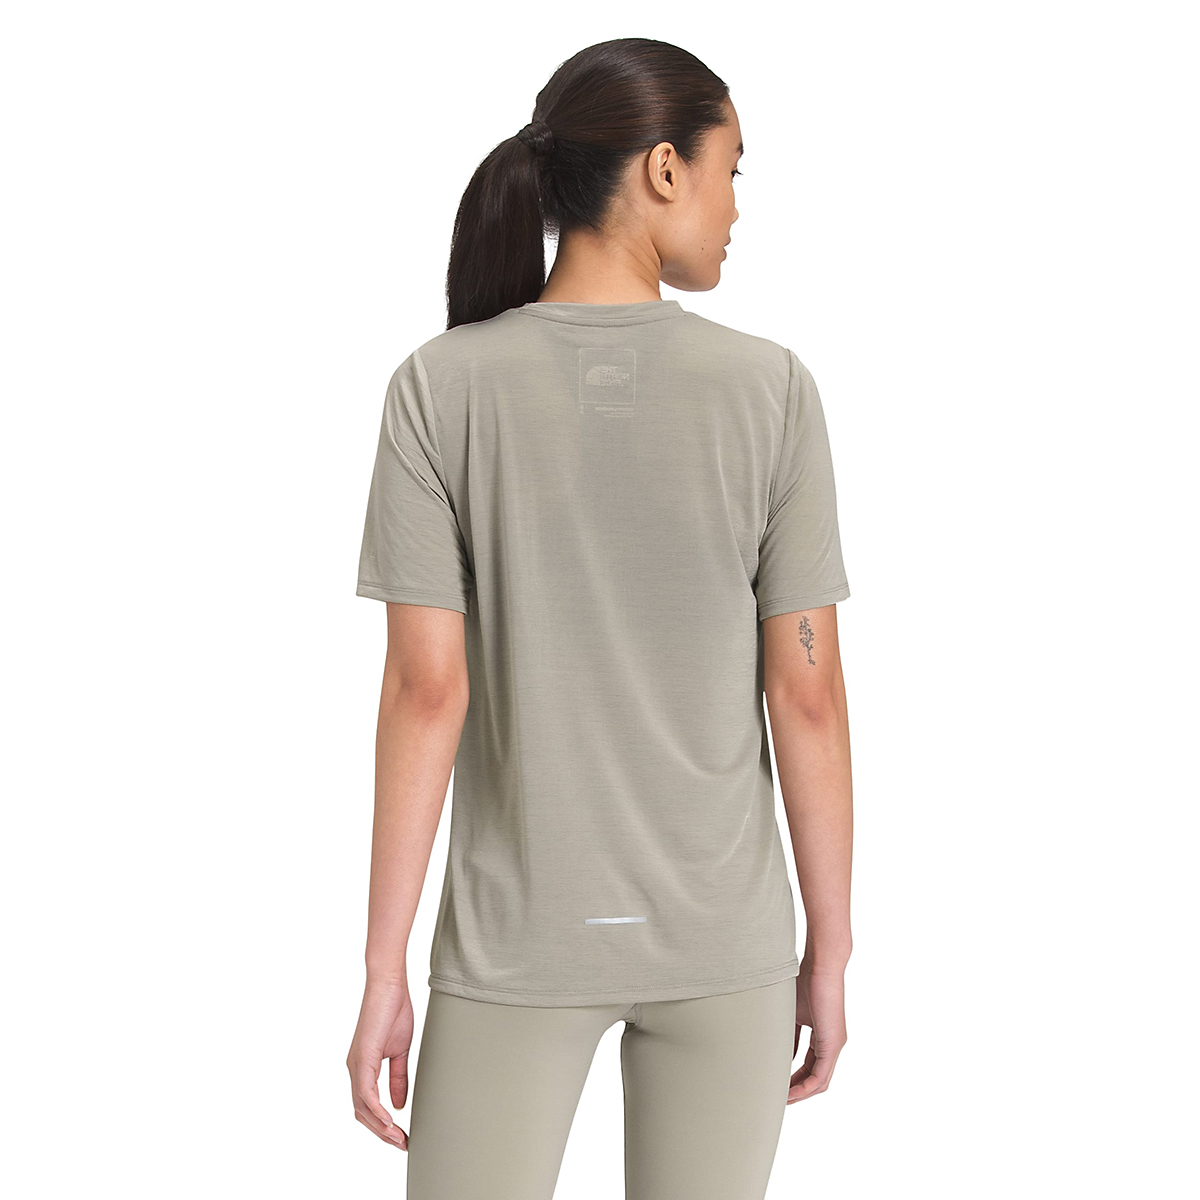 Women's The North Face Up With The Sun Short Sleeve Shirt - Color: Mineral Grey - Size: XS, Mineral Grey, large, image 3